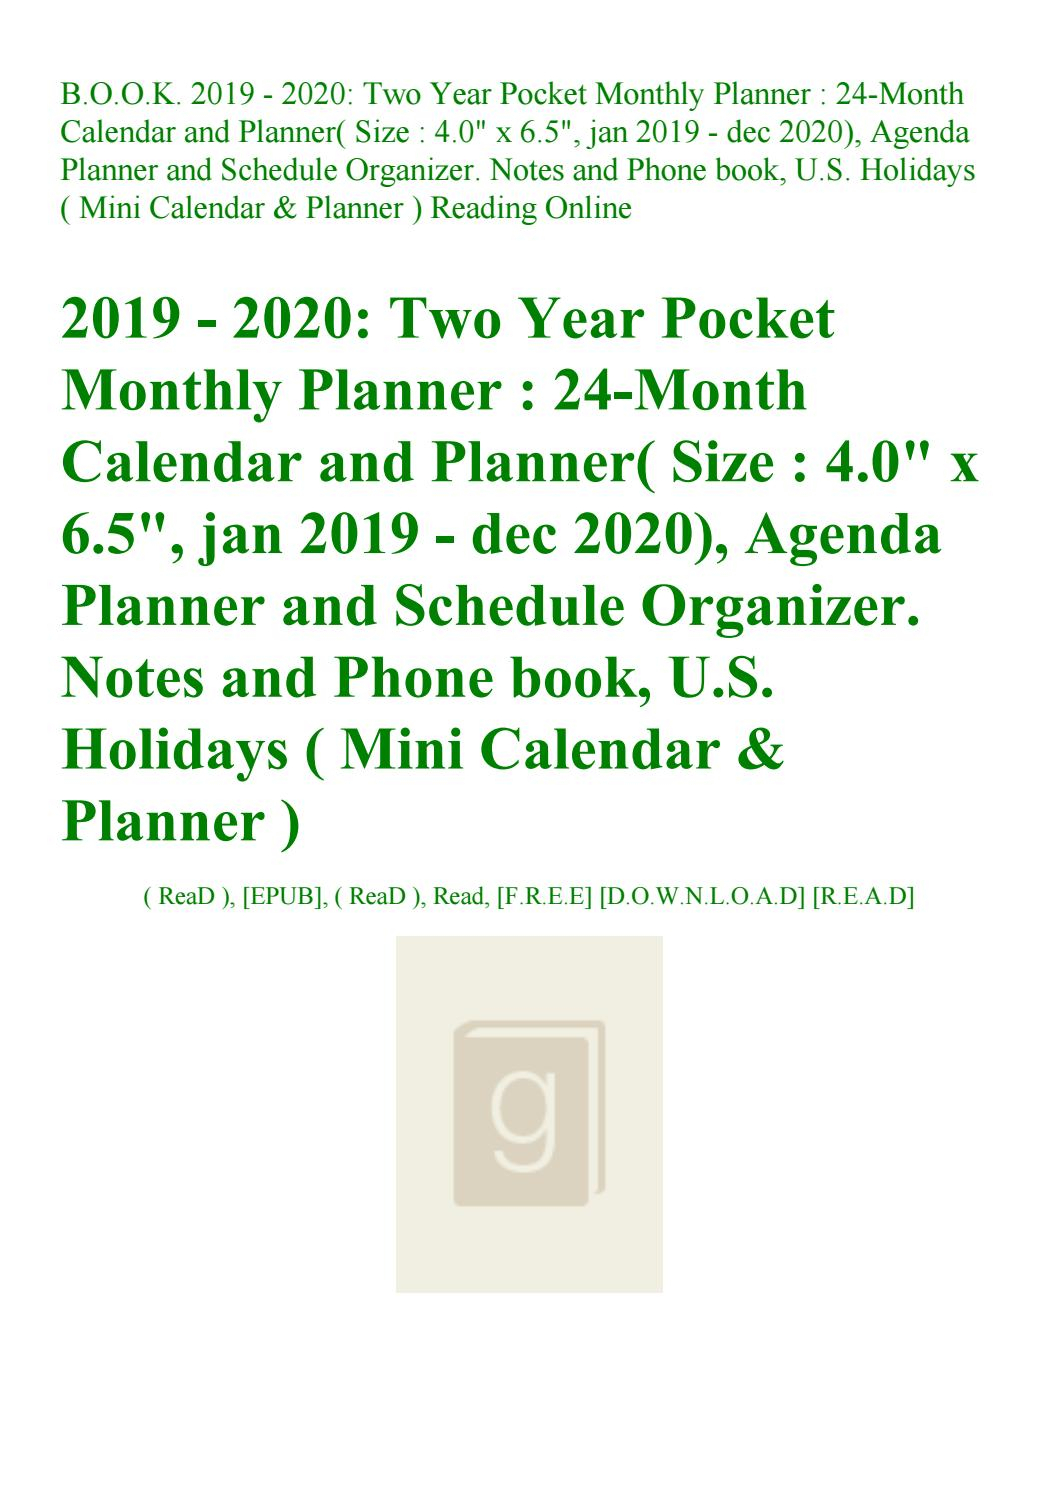 Read B.o.o.k. 2019 - 2020 Two Year Pocket Monthly Planner 24-Month intended for U Of R 2020 Calendar